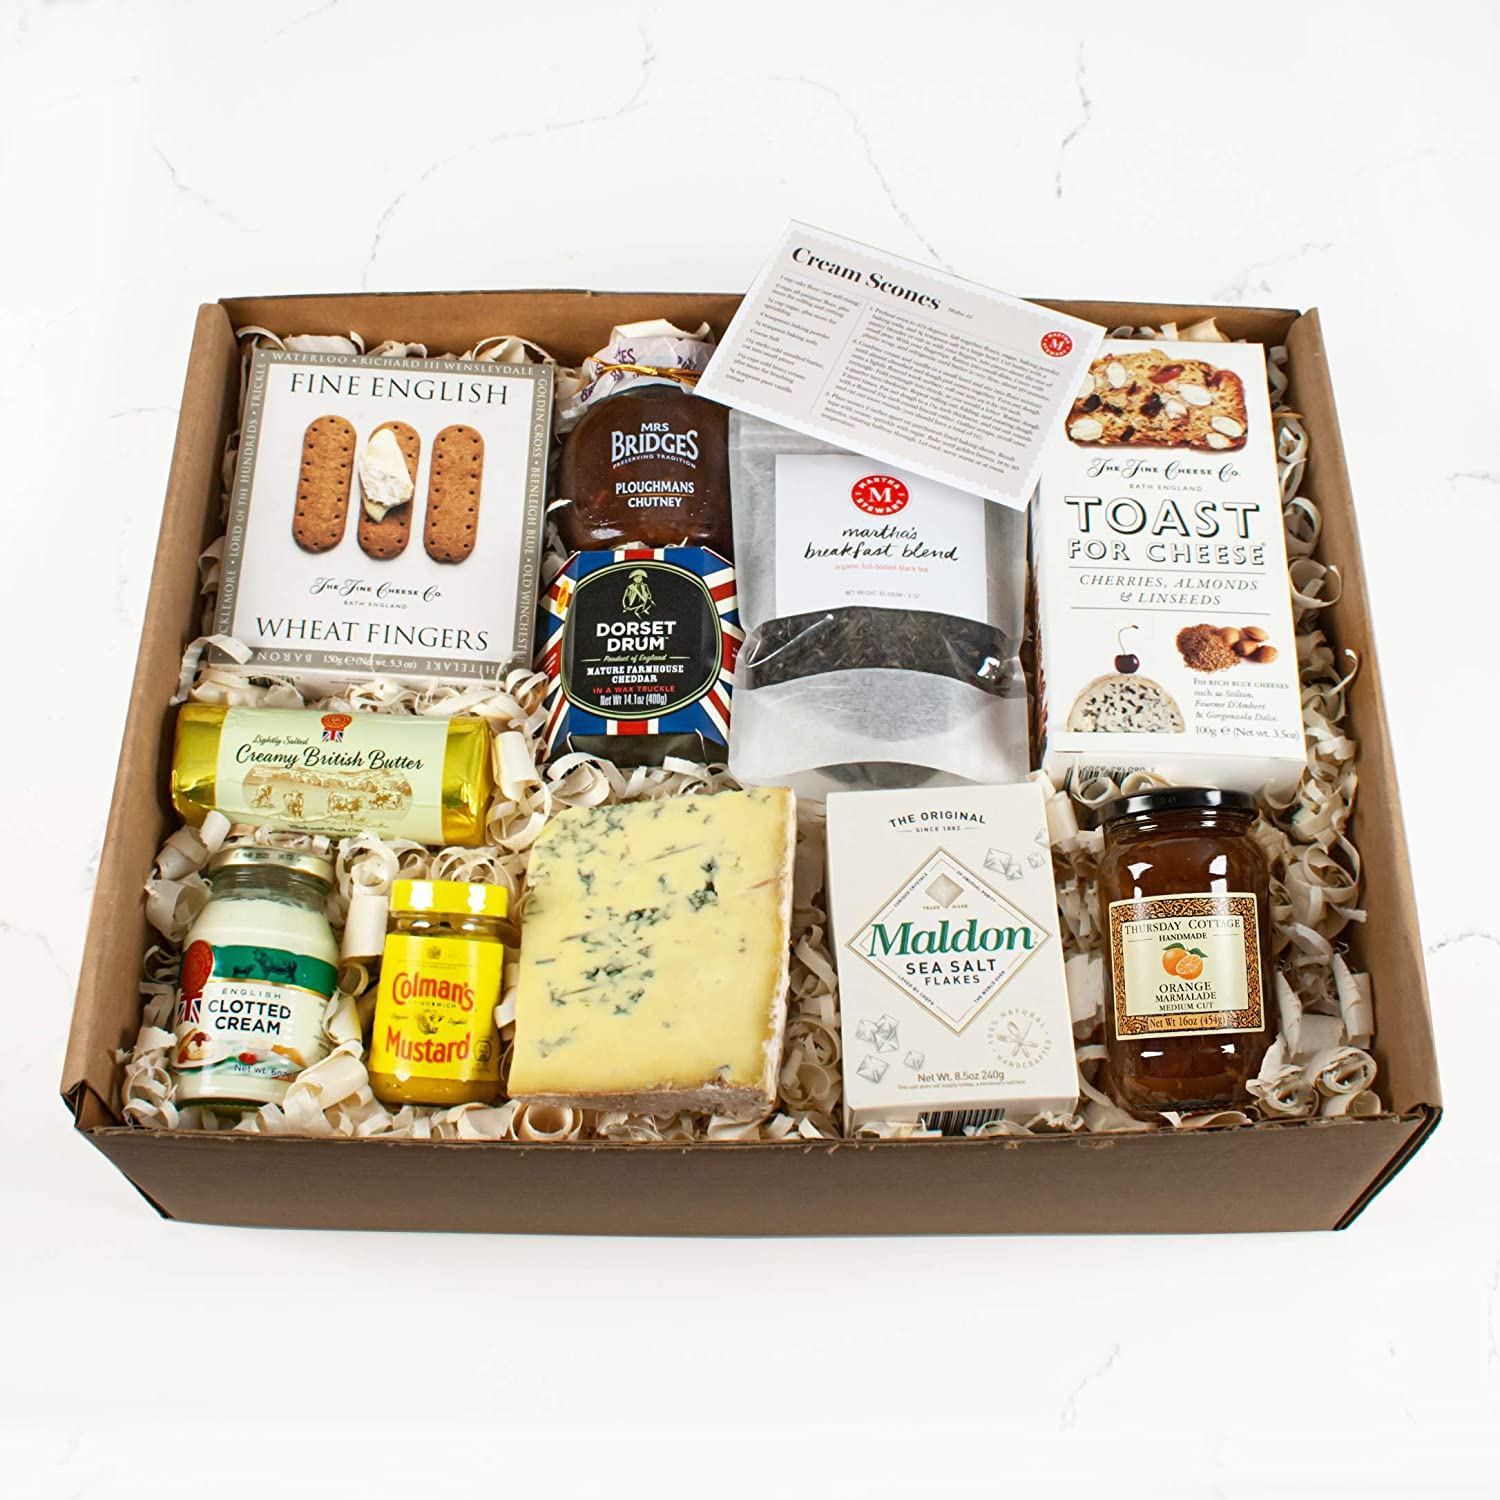 Martha Stewart Best of Britain Gift Basket - Includes Gourmet Cheeses, Ploughmans Chutney, Orange Marmalade, Rich Clotted cream, Buttery Crackers, Pungent Mustard, and Breakfast Blend Tea